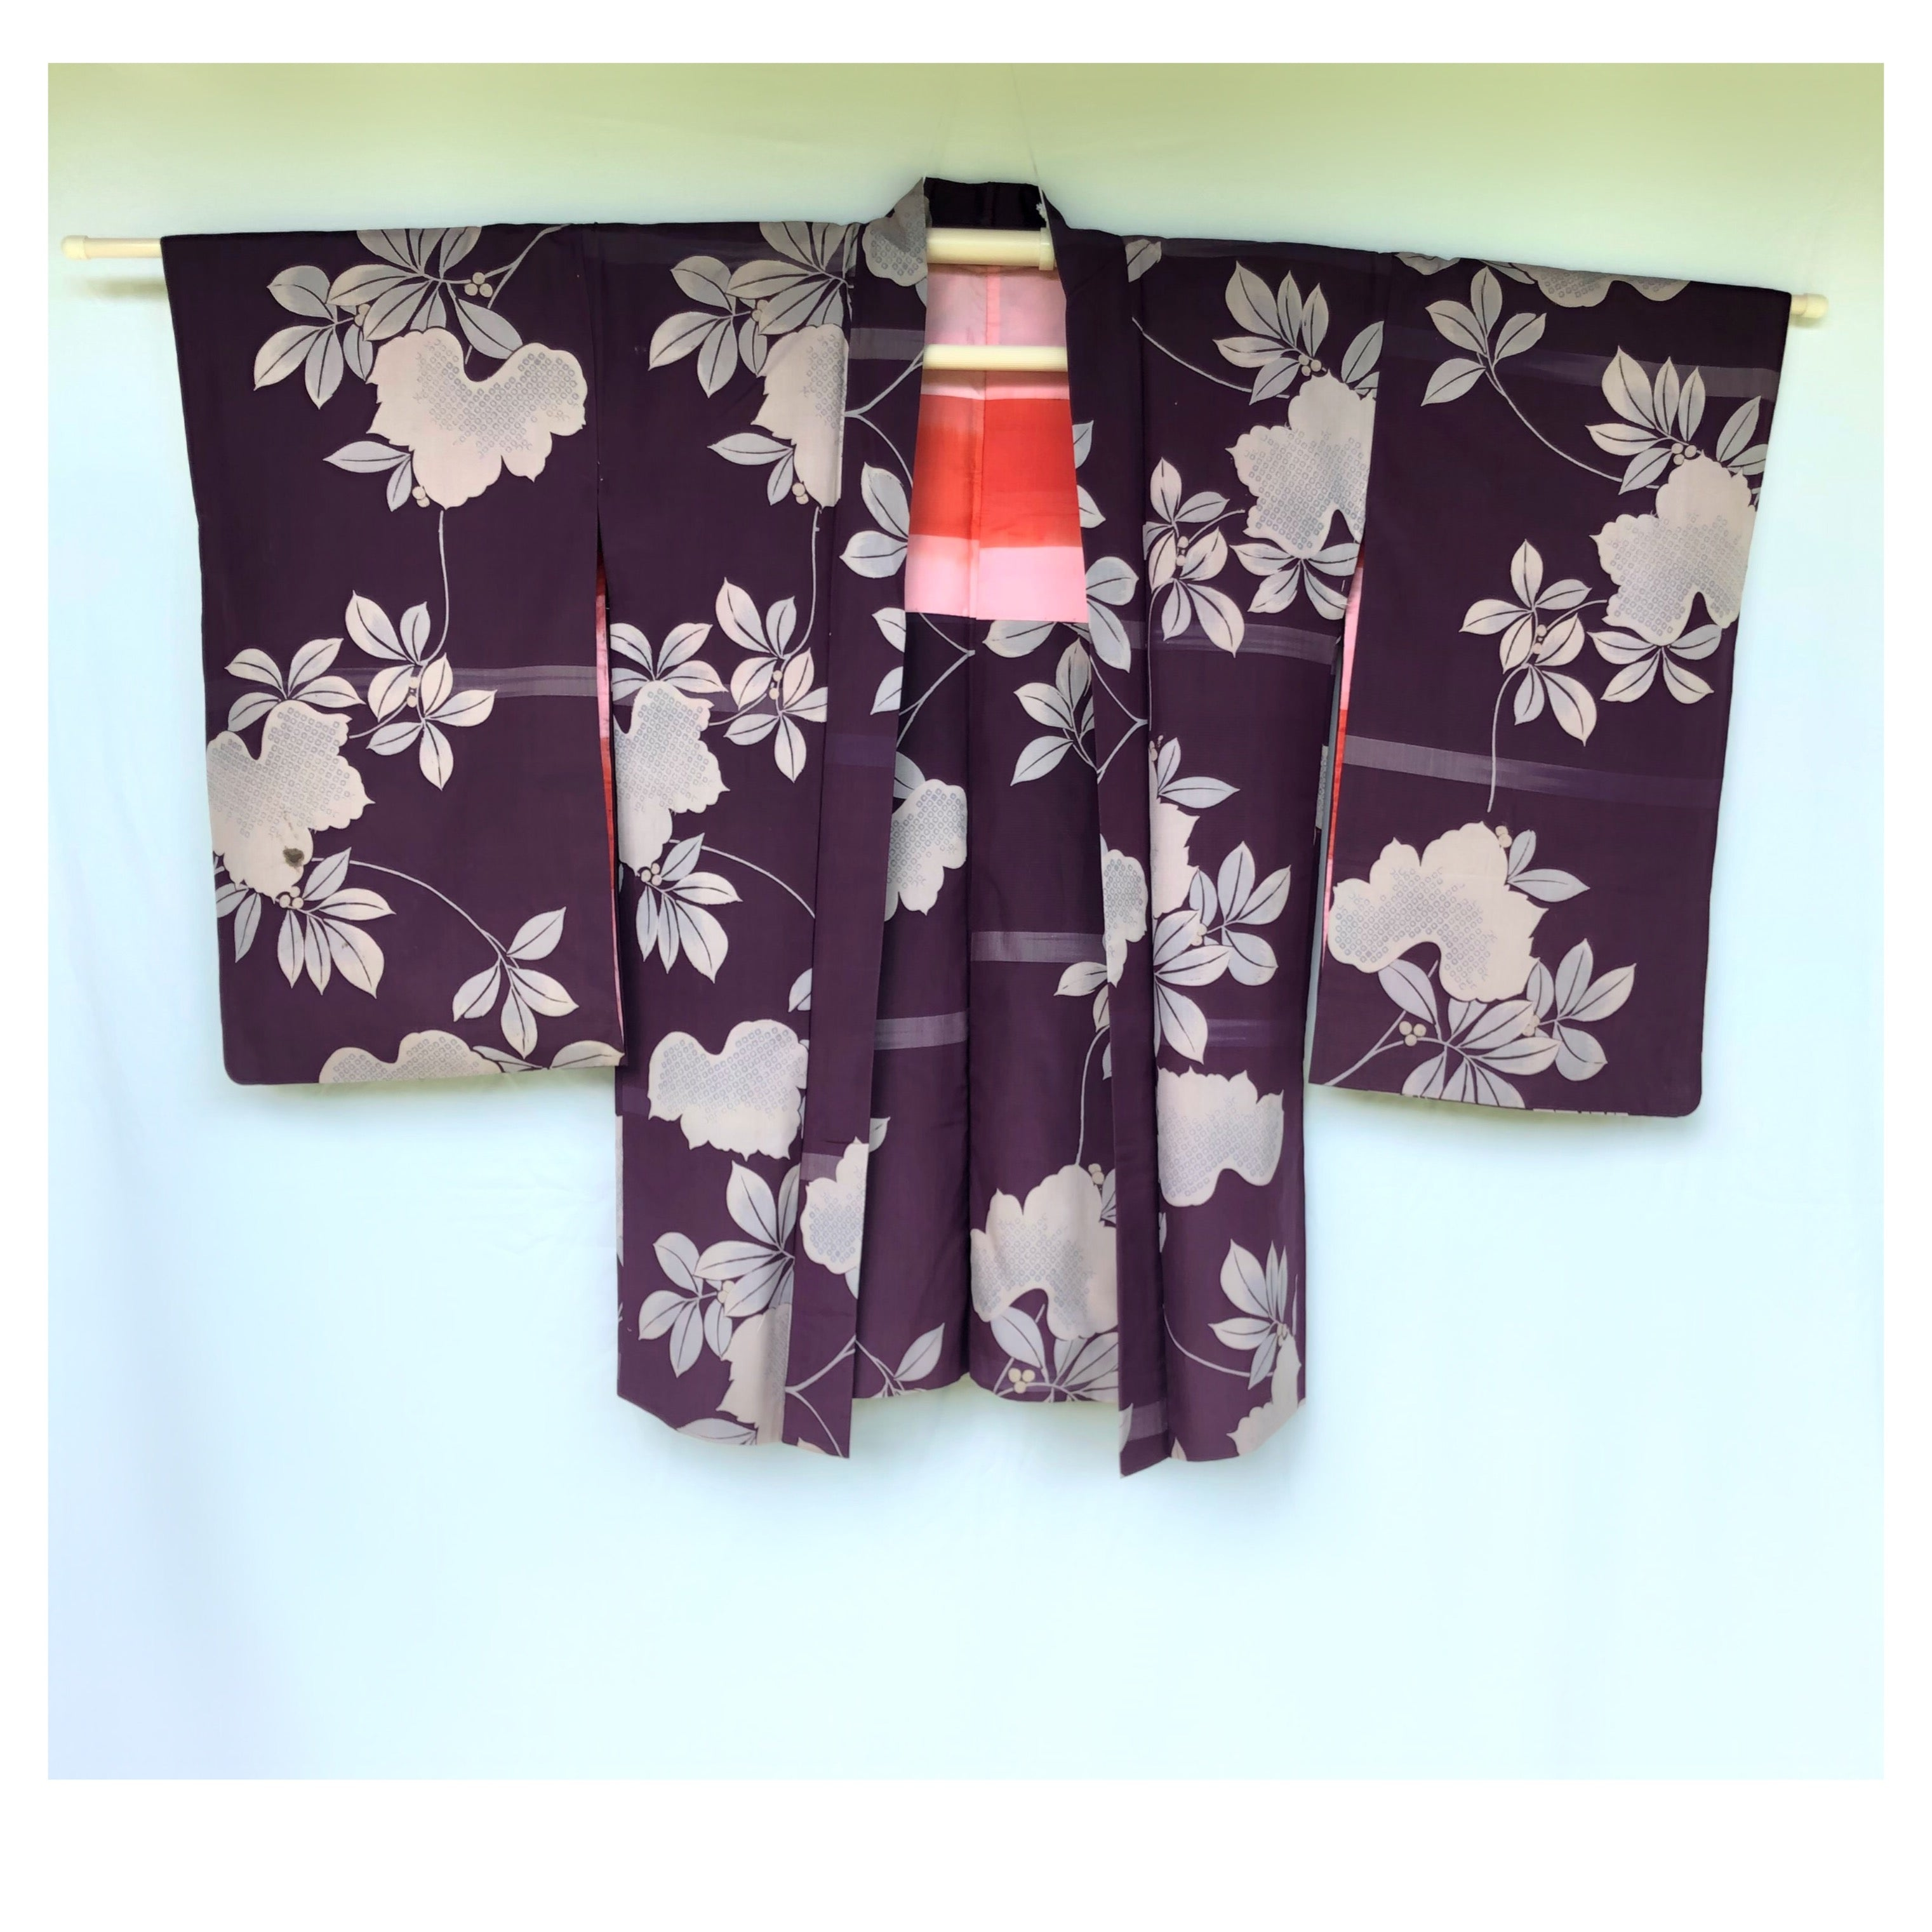 Antique haori fleuri.